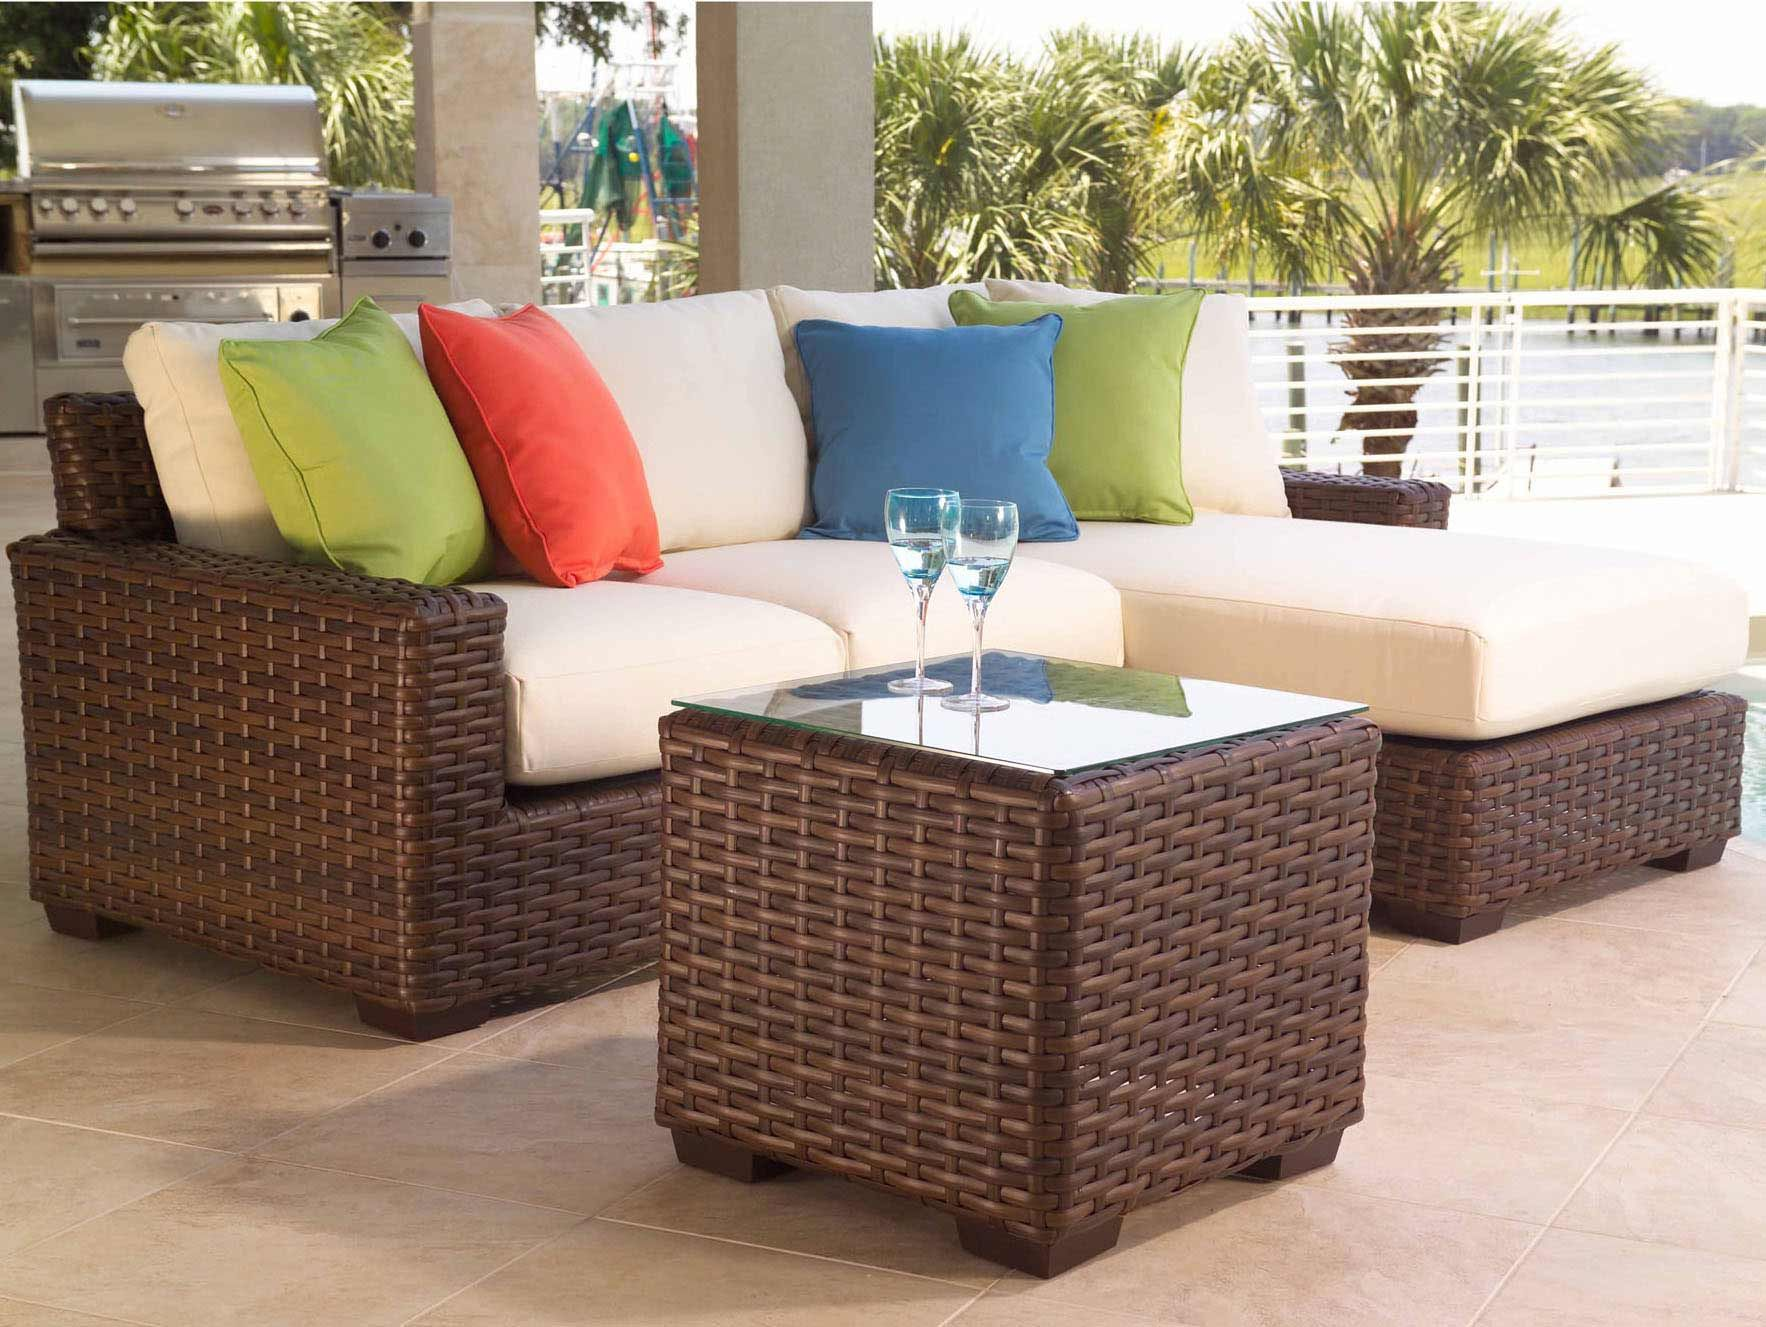 Outdoor Living Room This Outdoor Space Is Complete With A Fireplace Sitting Area Di Outdoor Patio Furniture Sets Modern Patio Furniture Patio Furniture Sets